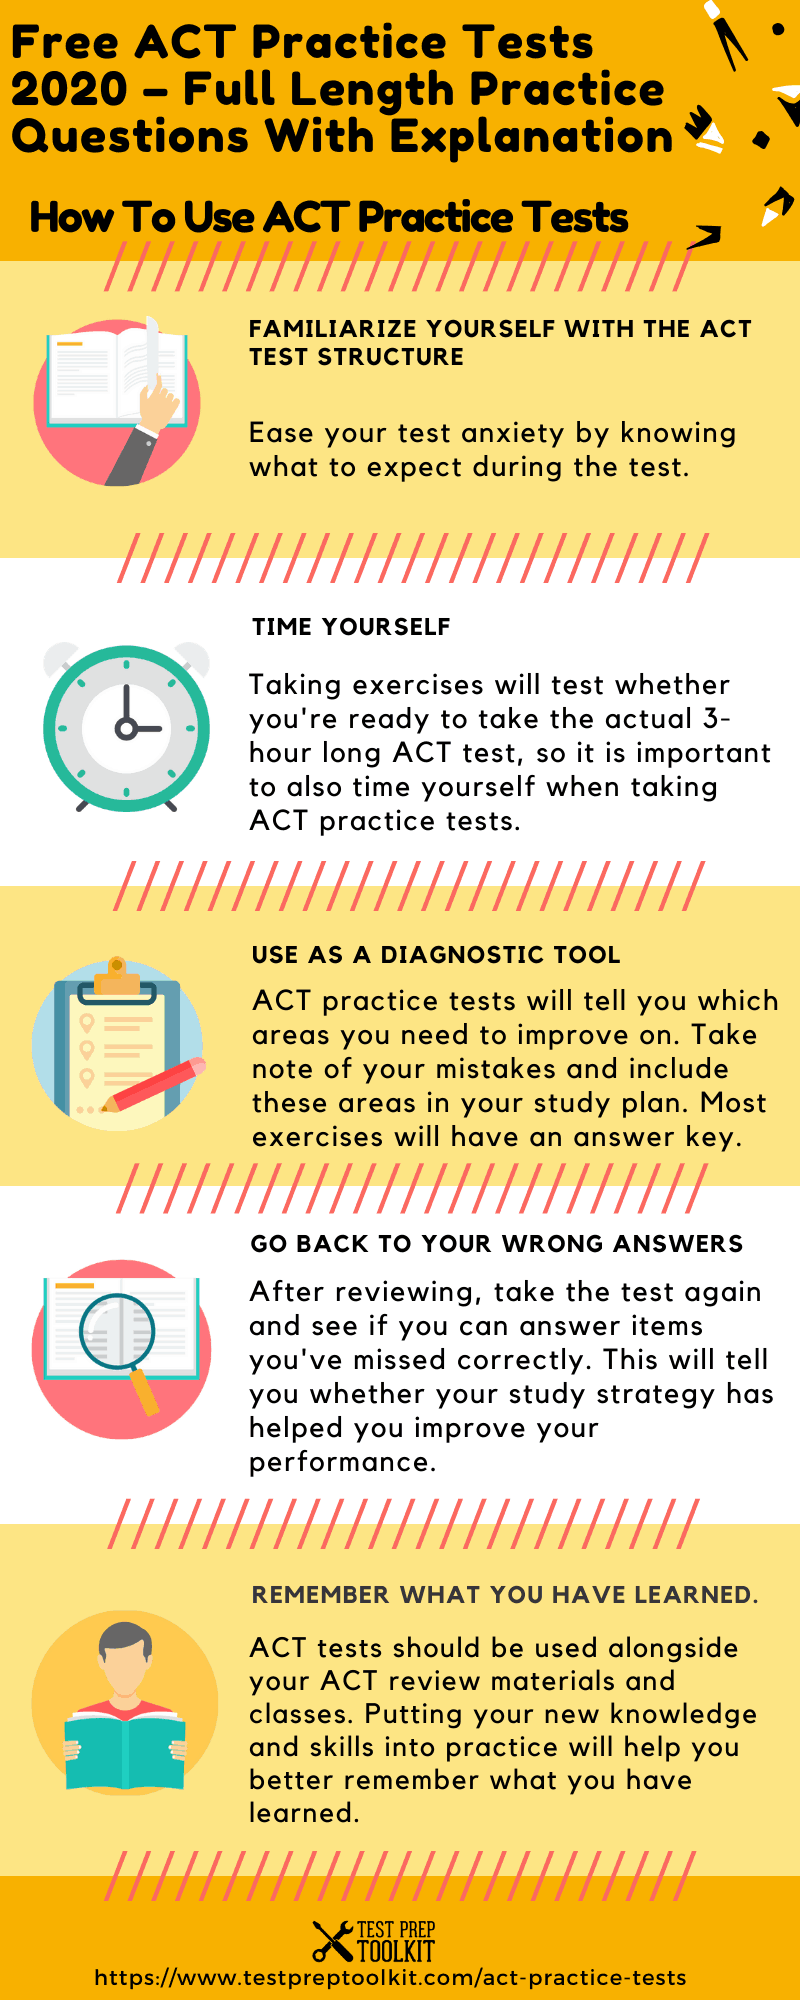 ACT practice tests